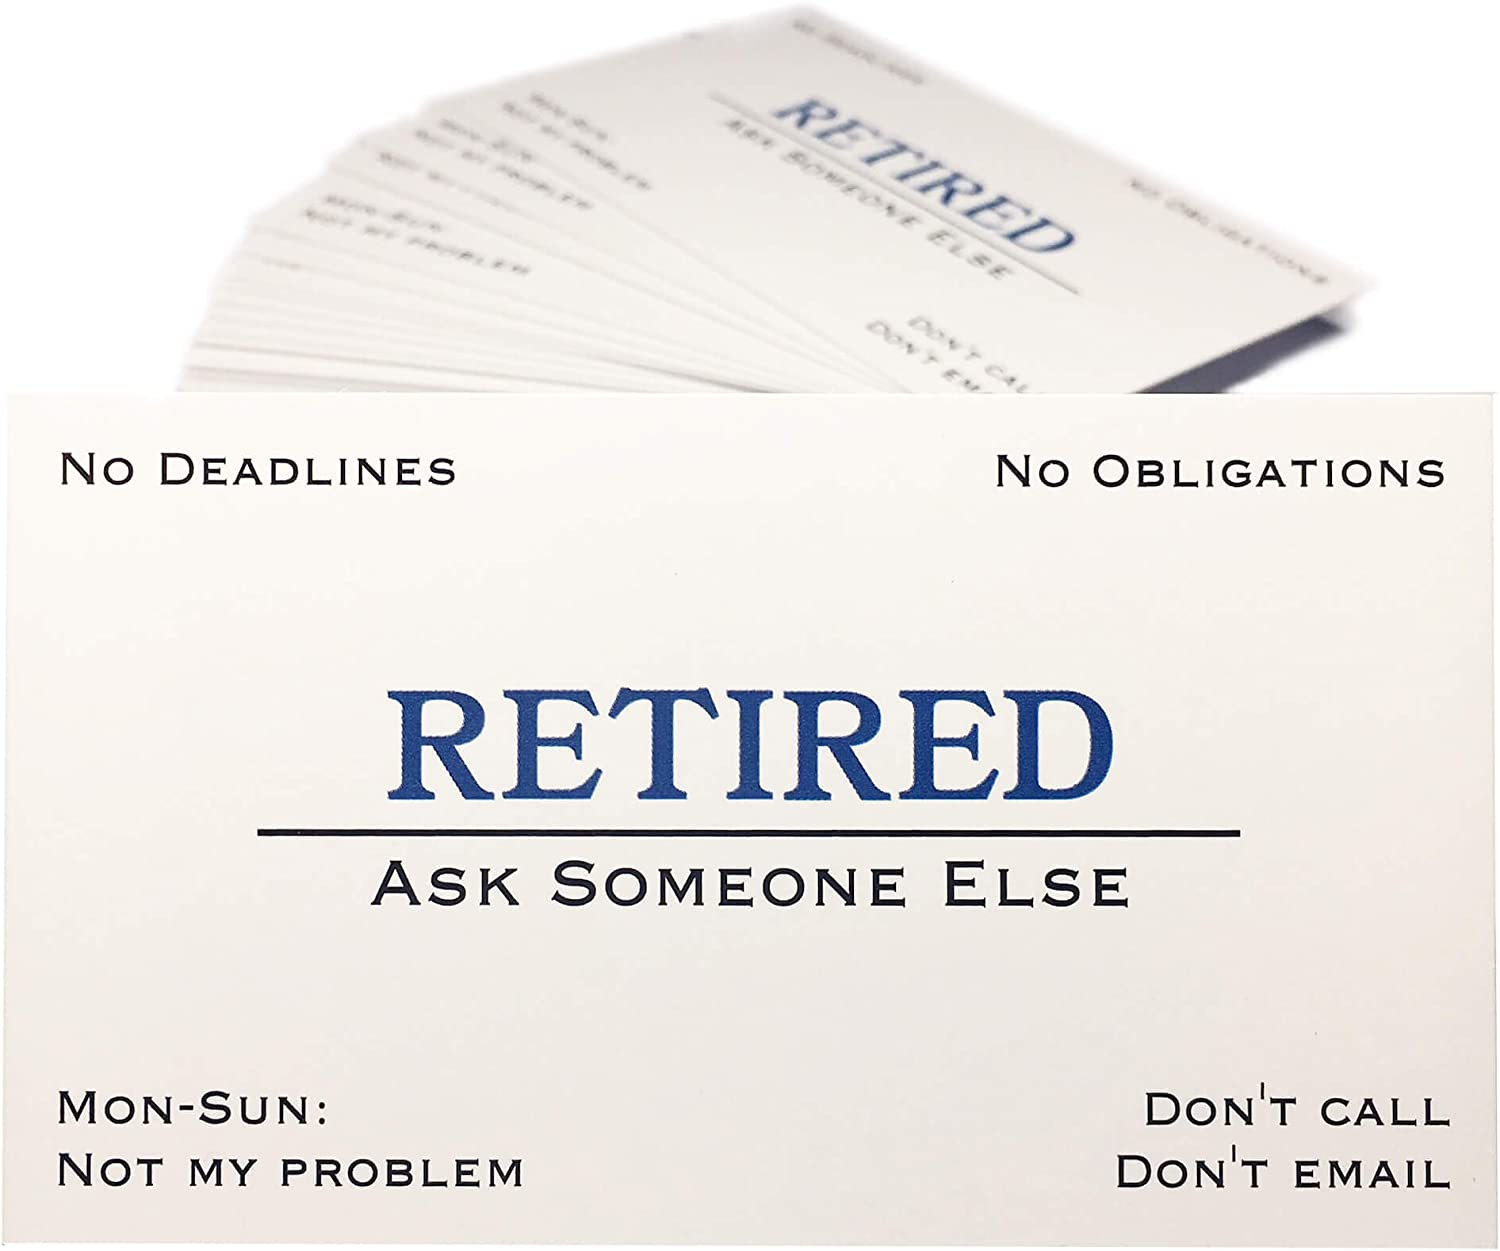 Out of Business Cards - Funny Retirement Gift for Men, Women, Coworkers, Employees, Boss, Friend, Colleague 71gU-7uKwNL